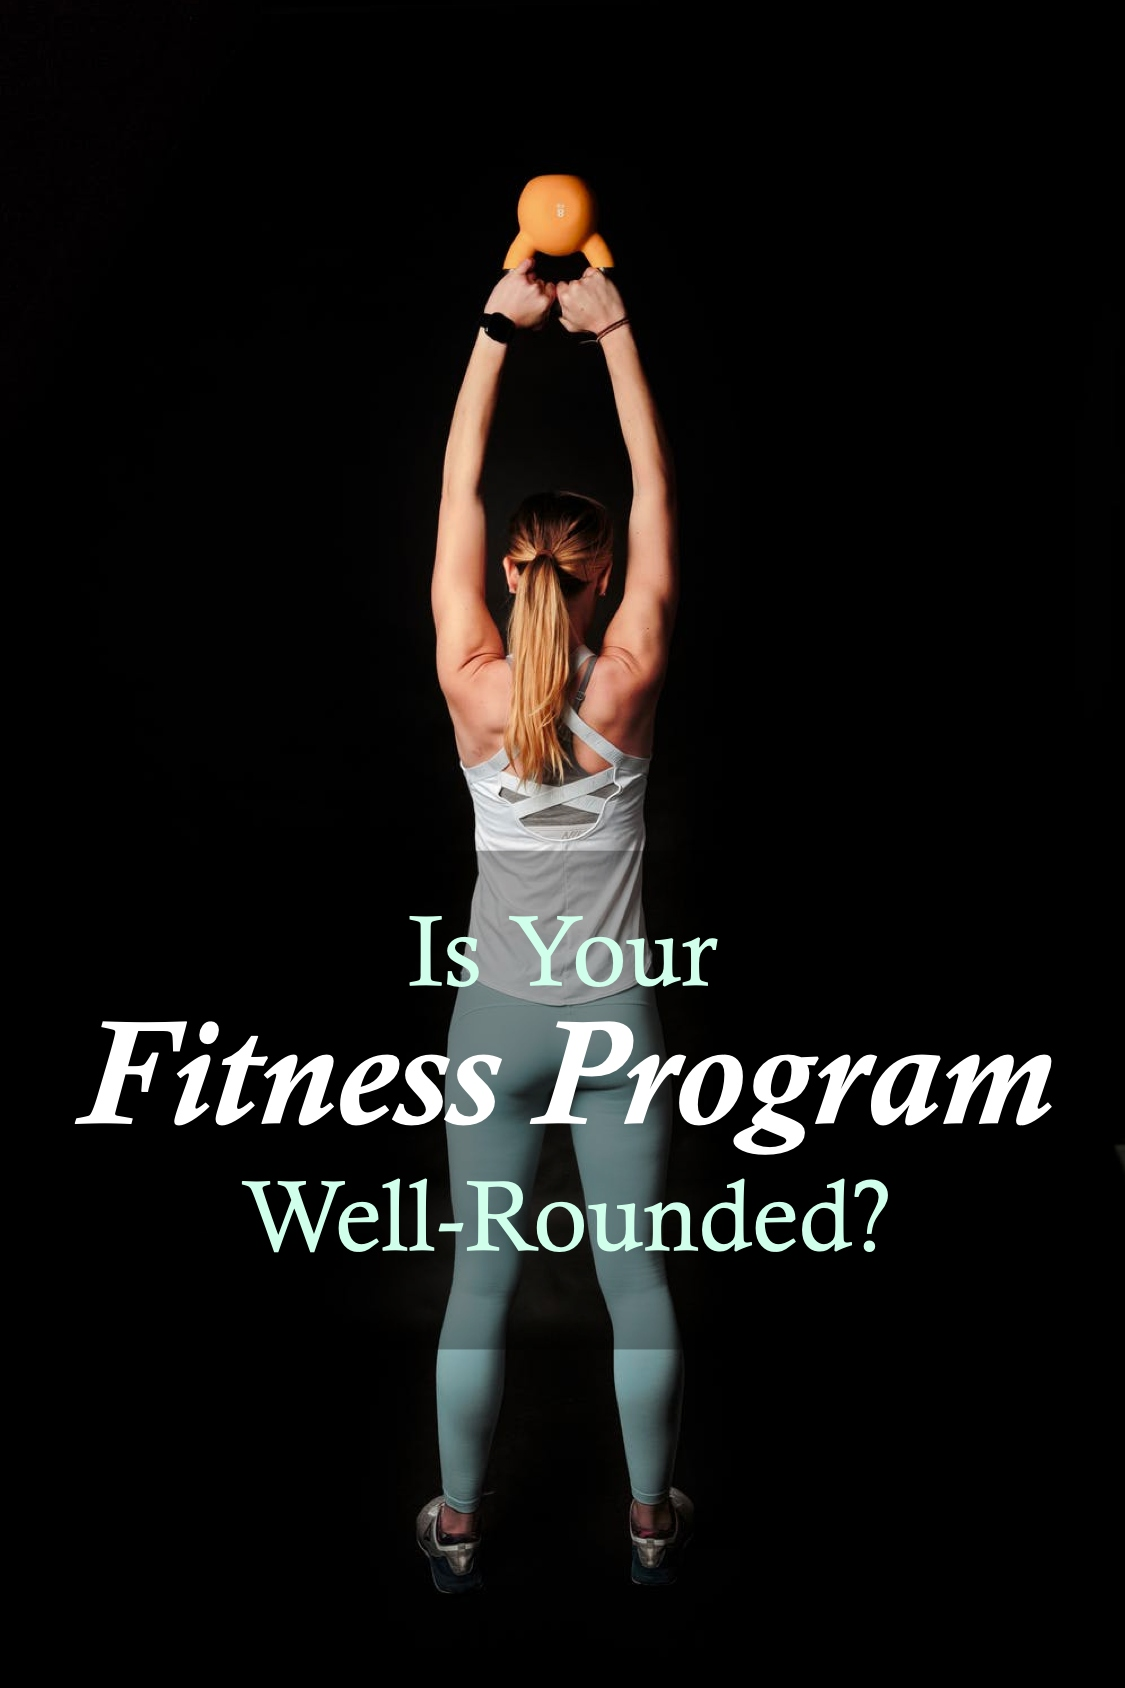 Pin Design - Is Your Fitness Program Well-Rounded?